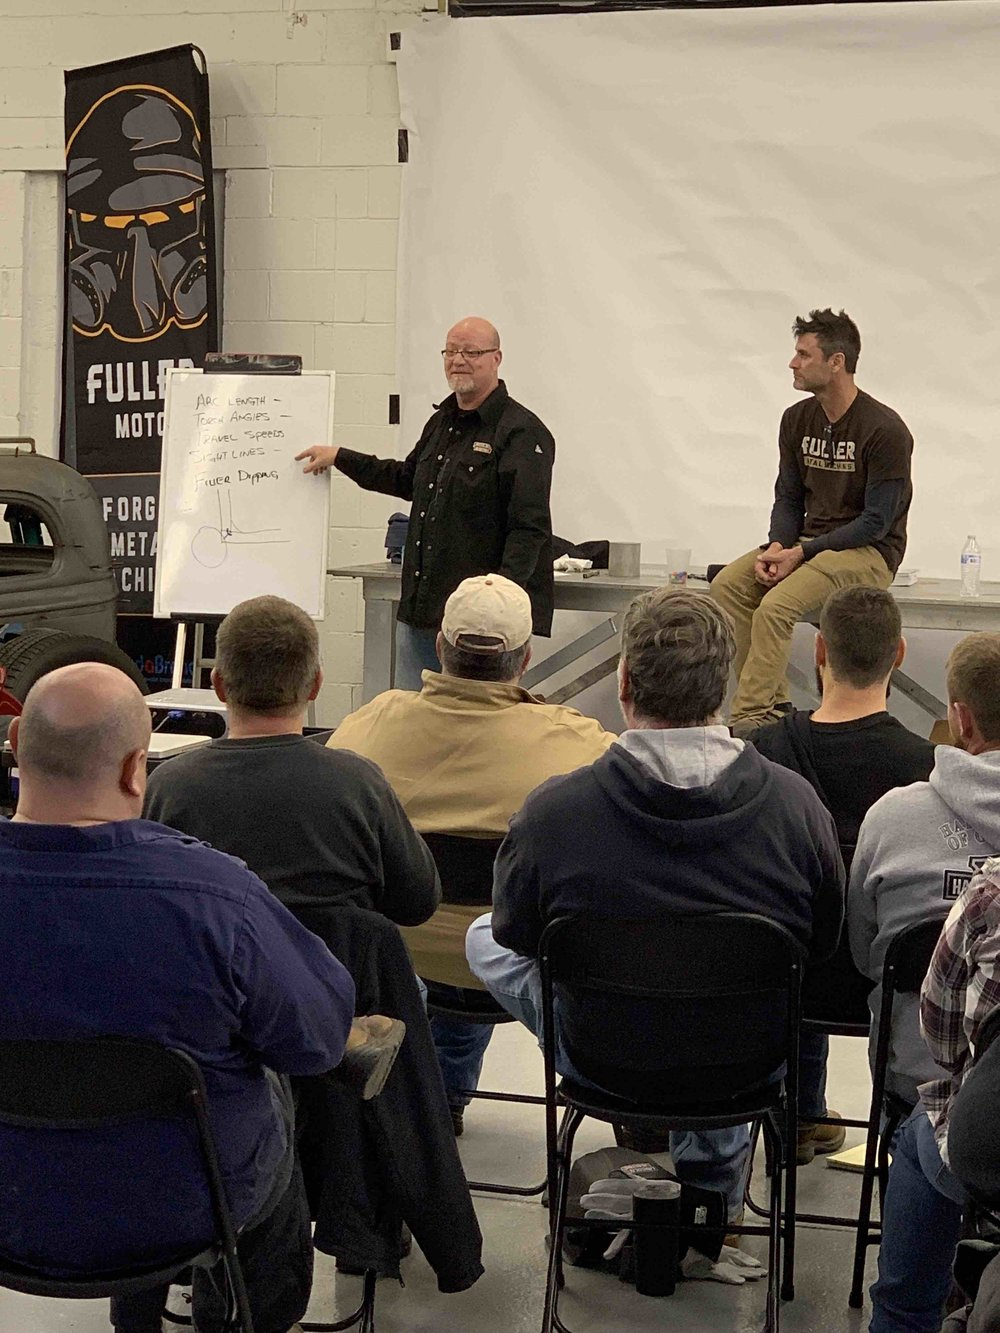 Fuller-Moto-Welding-Workshop-Jan2019-3.jpg